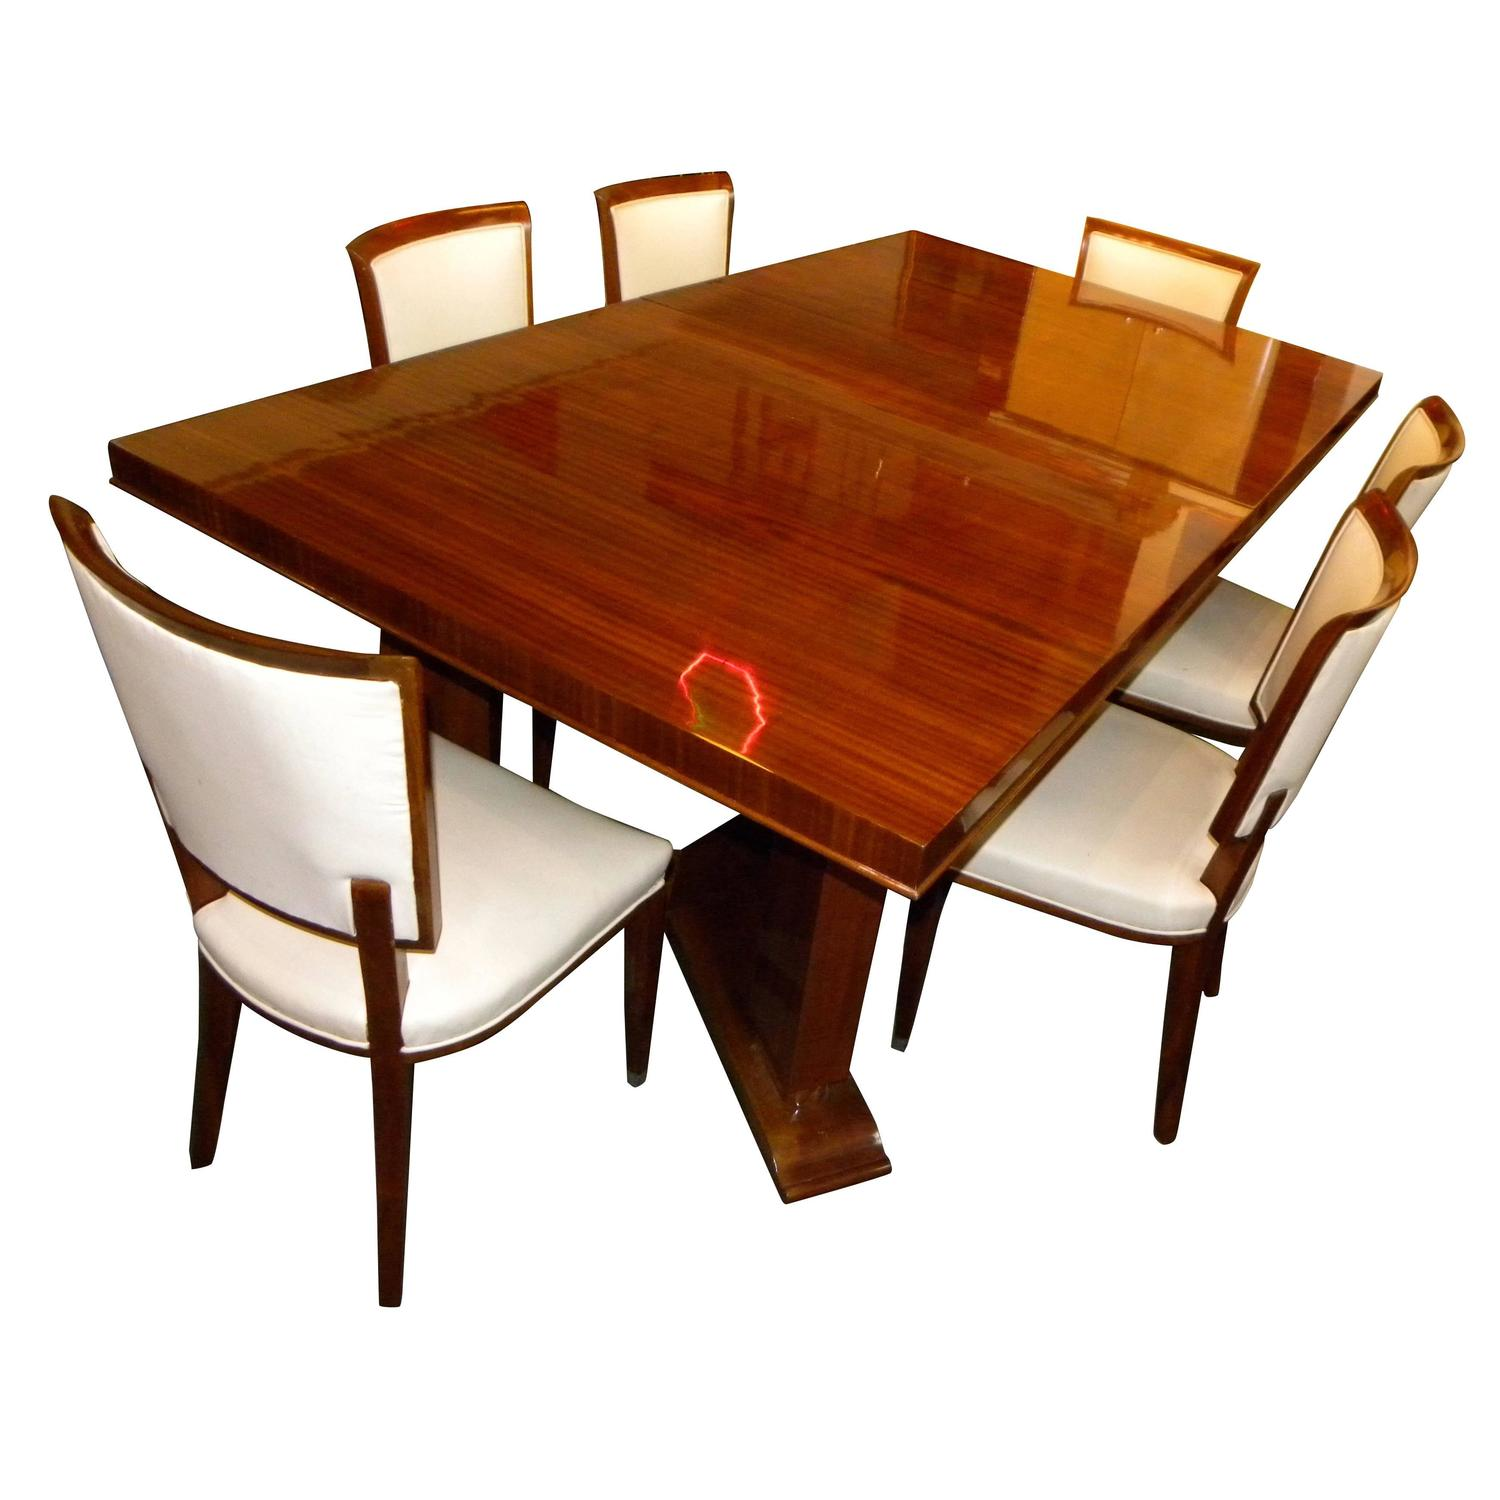 Jules leleu dining room table and chairs paris